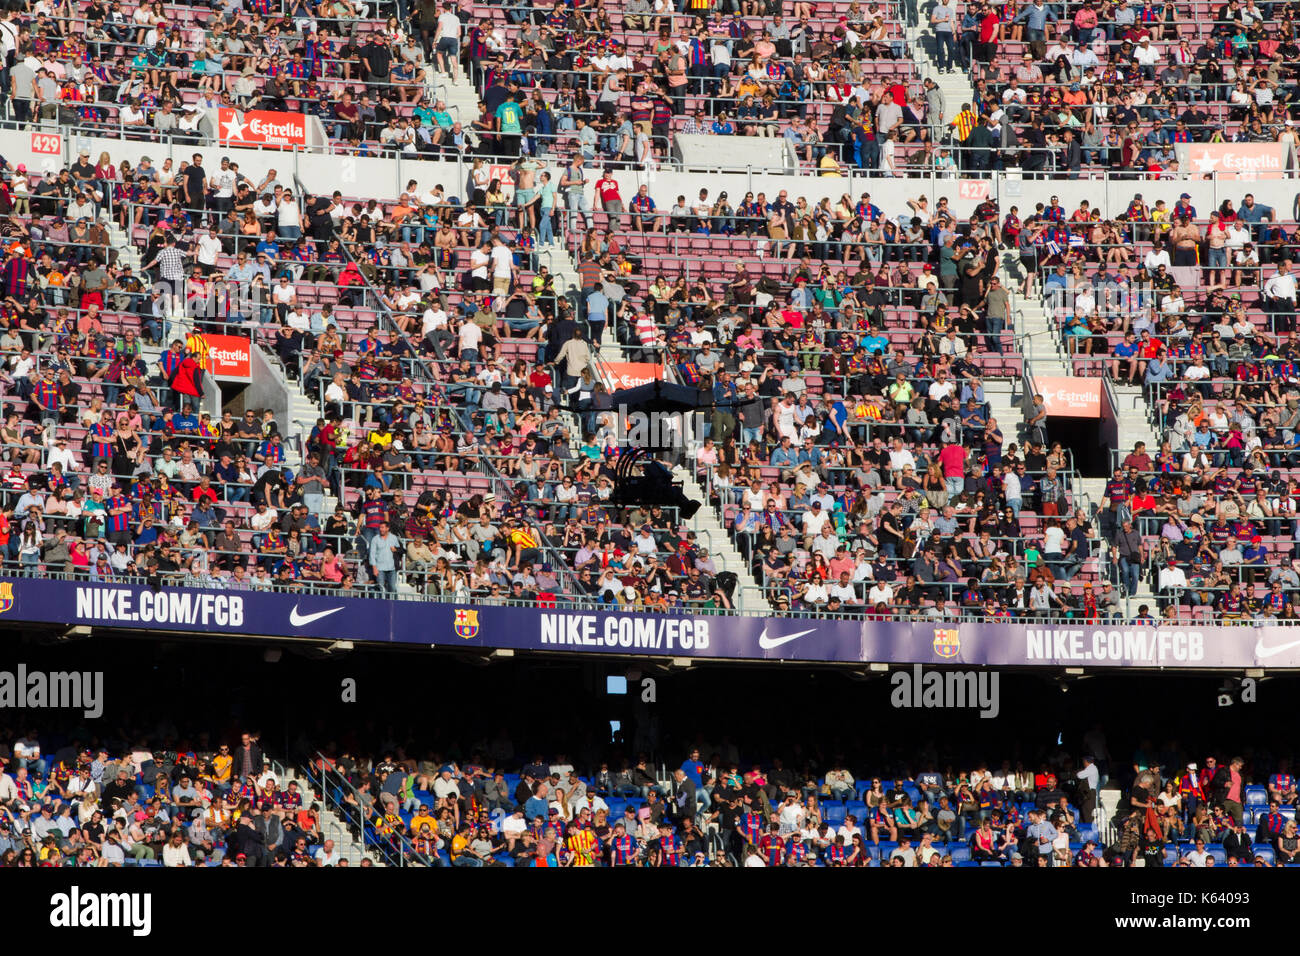 Crowds of supporters and fans - 6/5/17 Barcelona v Villarreal football league match at the Camp Nou stadium, Barcelona. - Stock Image